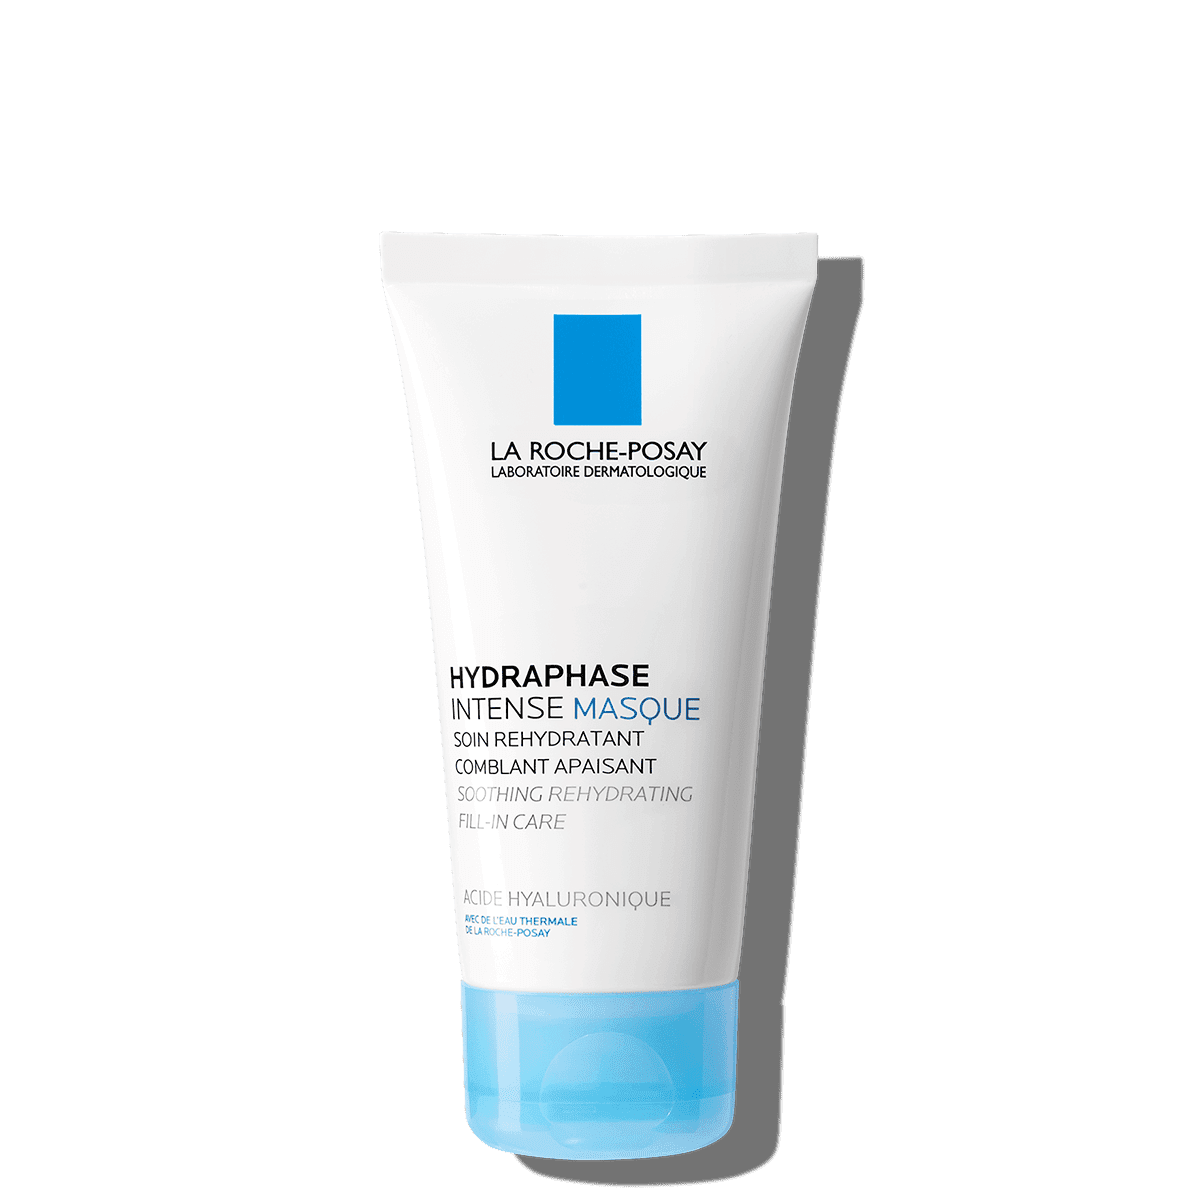 La Roche Posay ProductPage Hydraphase Intense Masque 50ml 333787241307